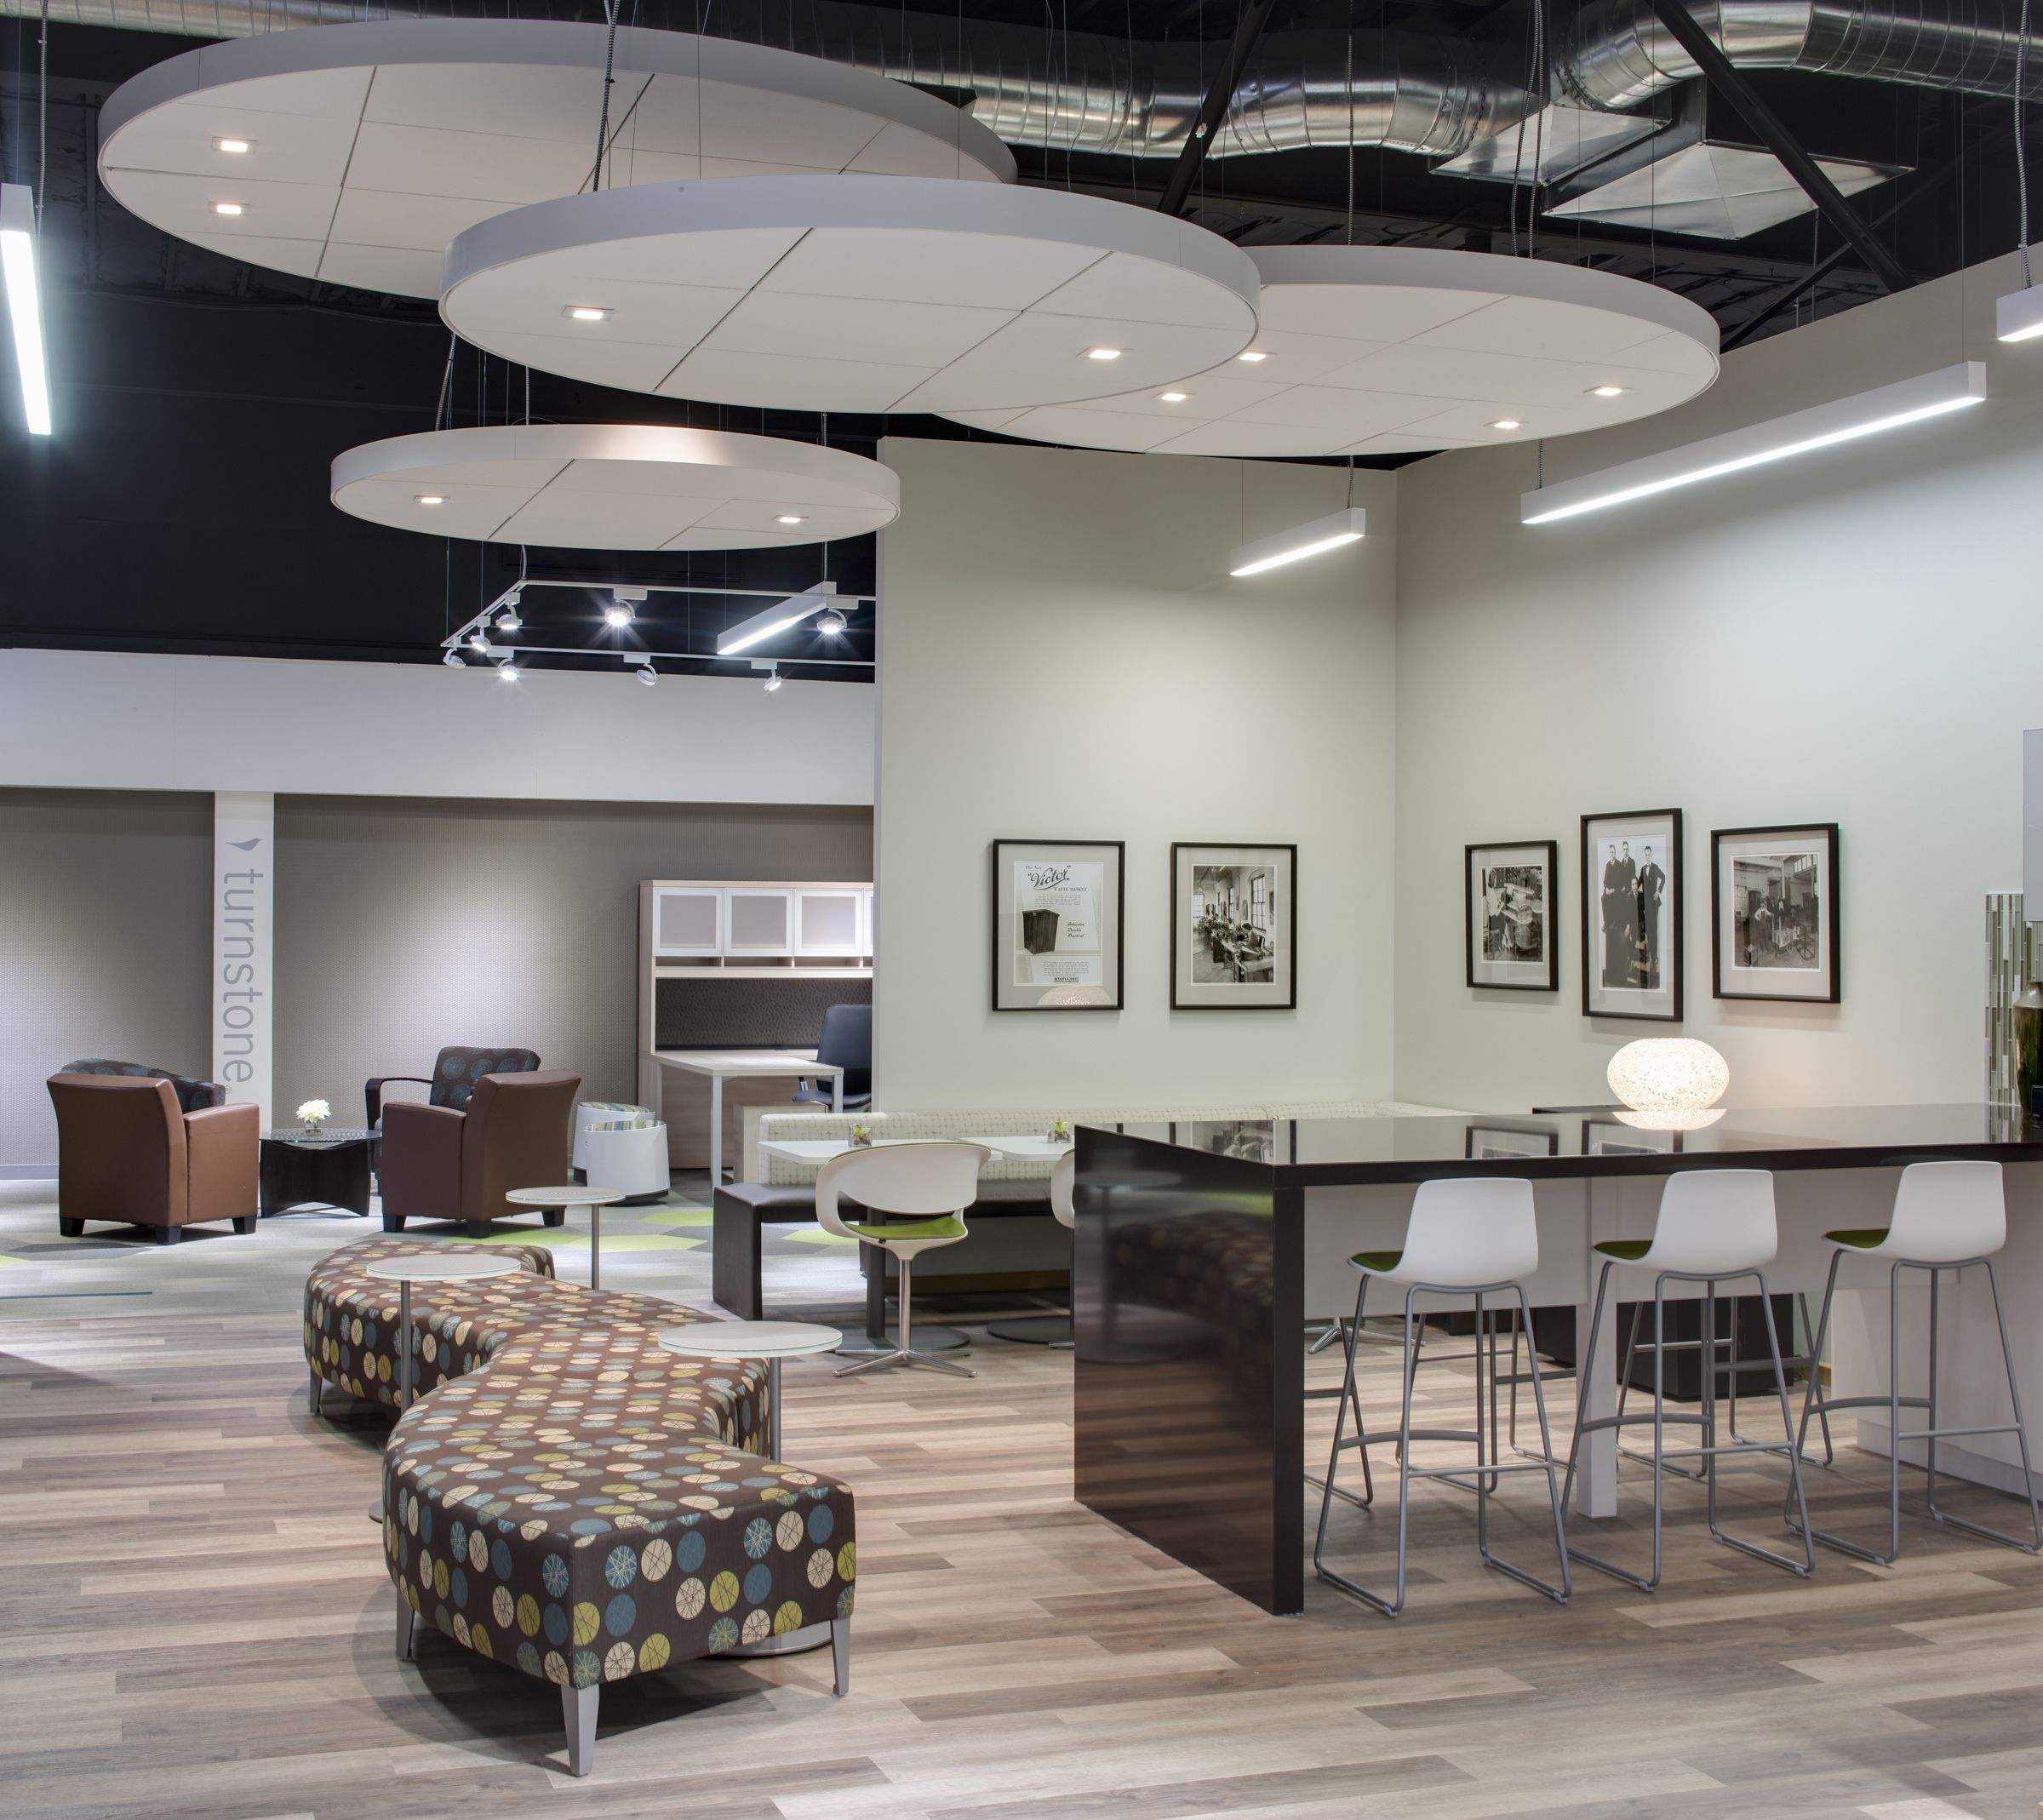 Superb Midwest Commercial Interiors Showroom   In Salt Lake City, UT #retail  #commercialspaces #